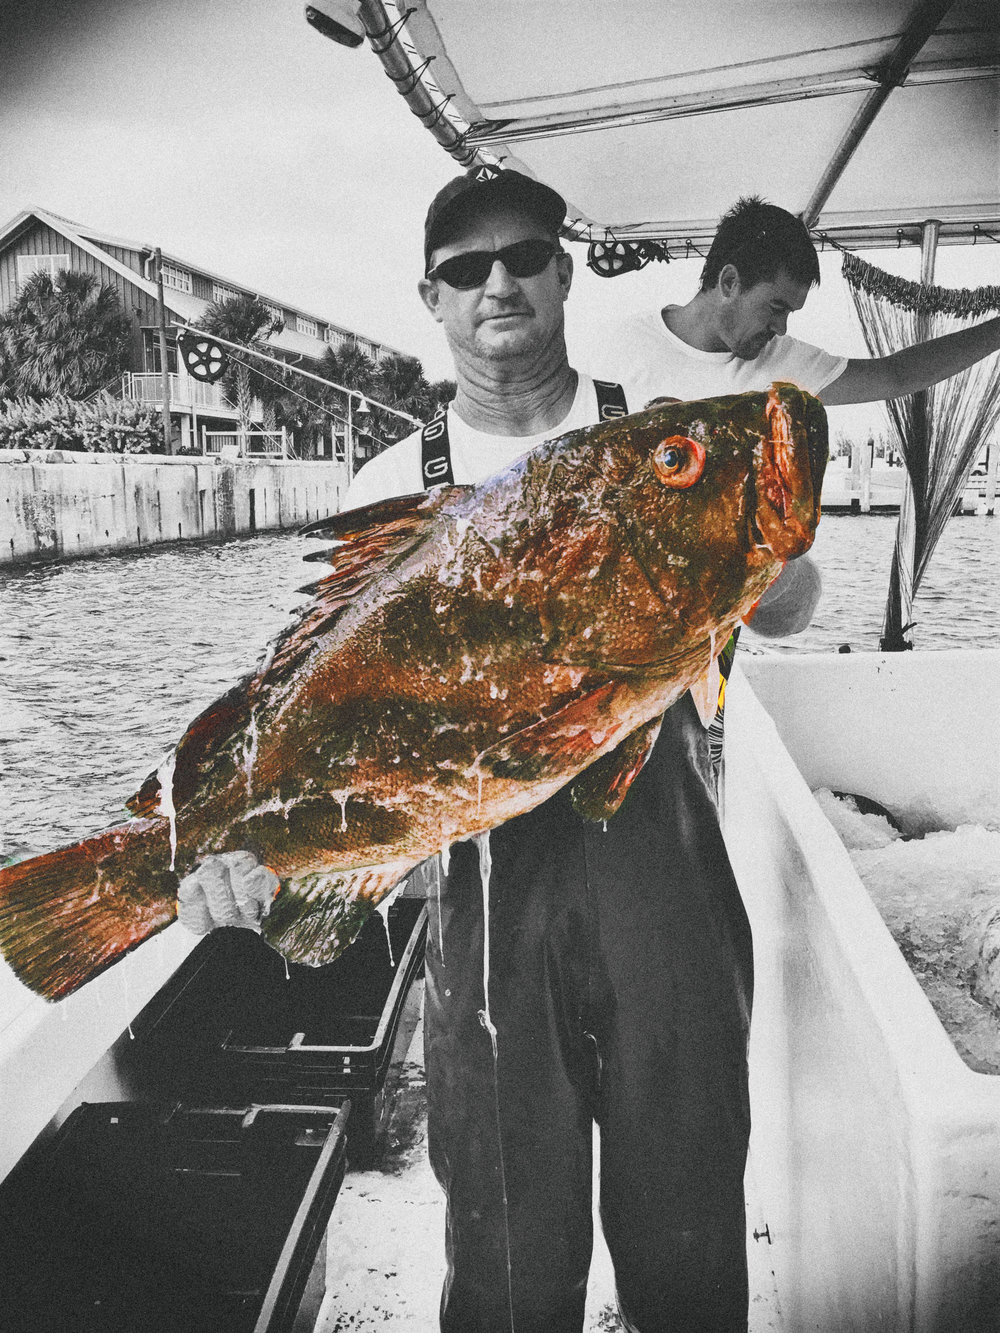 Fisherman & Grouper.jpg